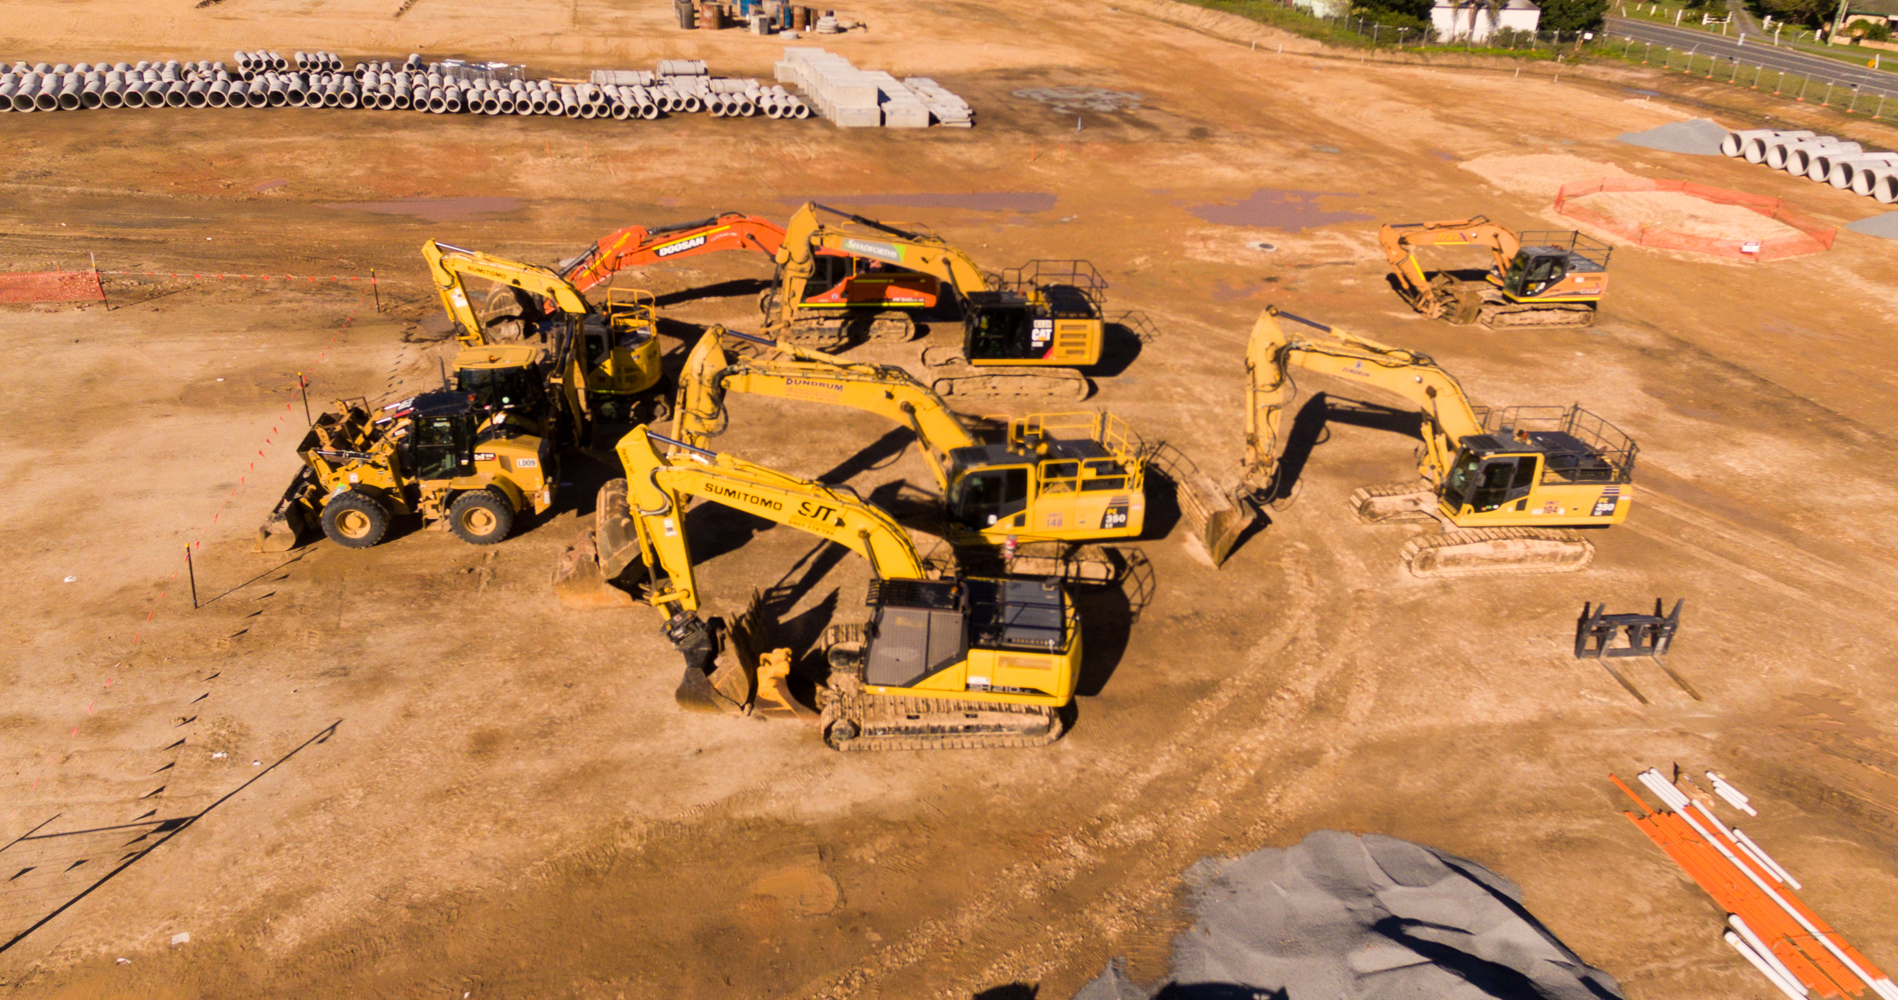 Pimpama machinery drone phtotography